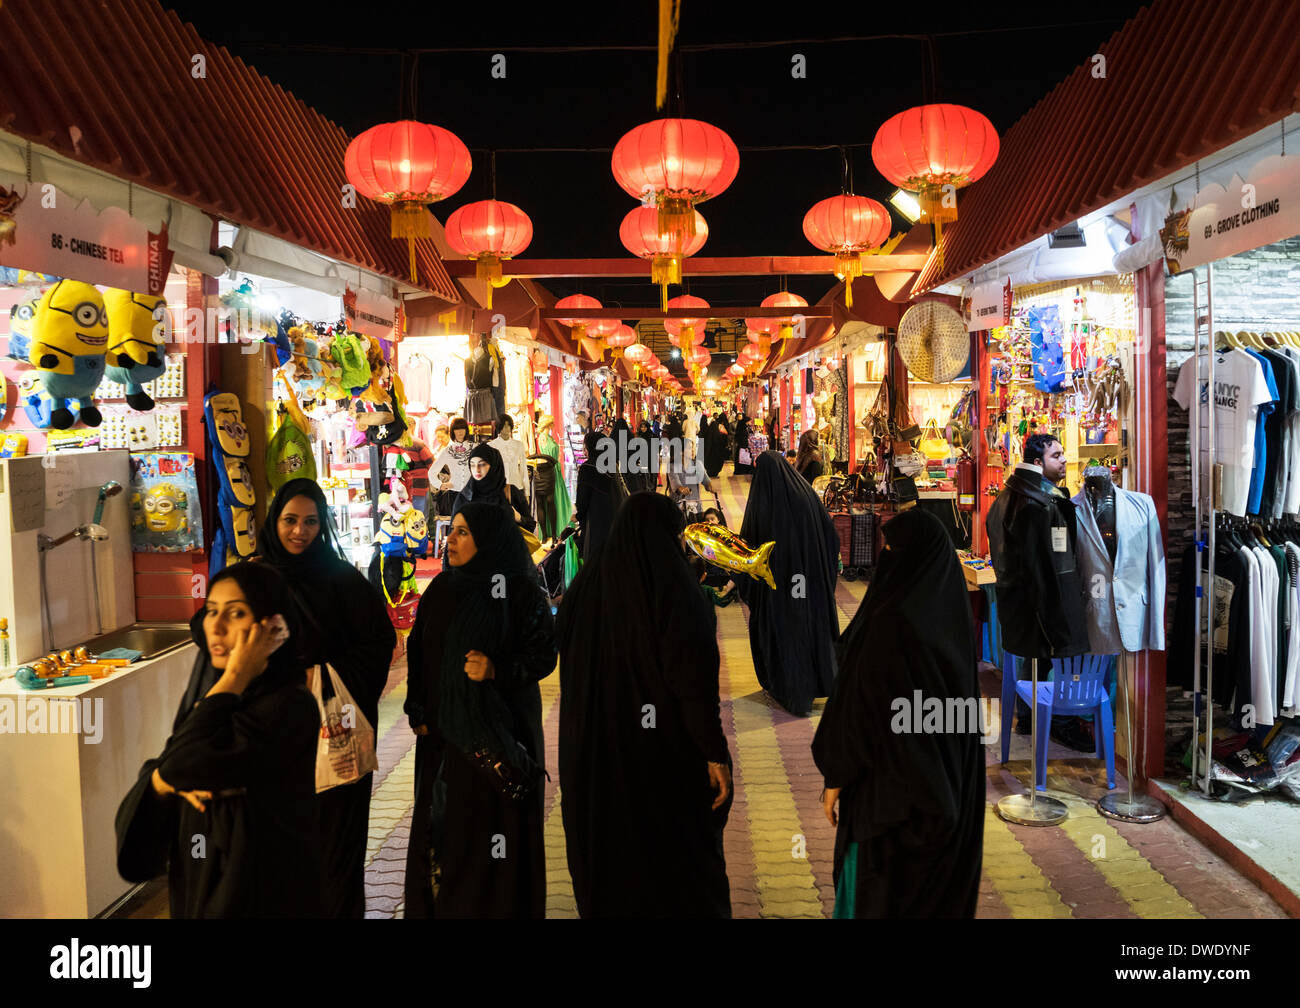 Women shopping in arcade at China Pavilion at Global Village tourist cultural attraction in Dubai United Arab Emirates - Stock Image